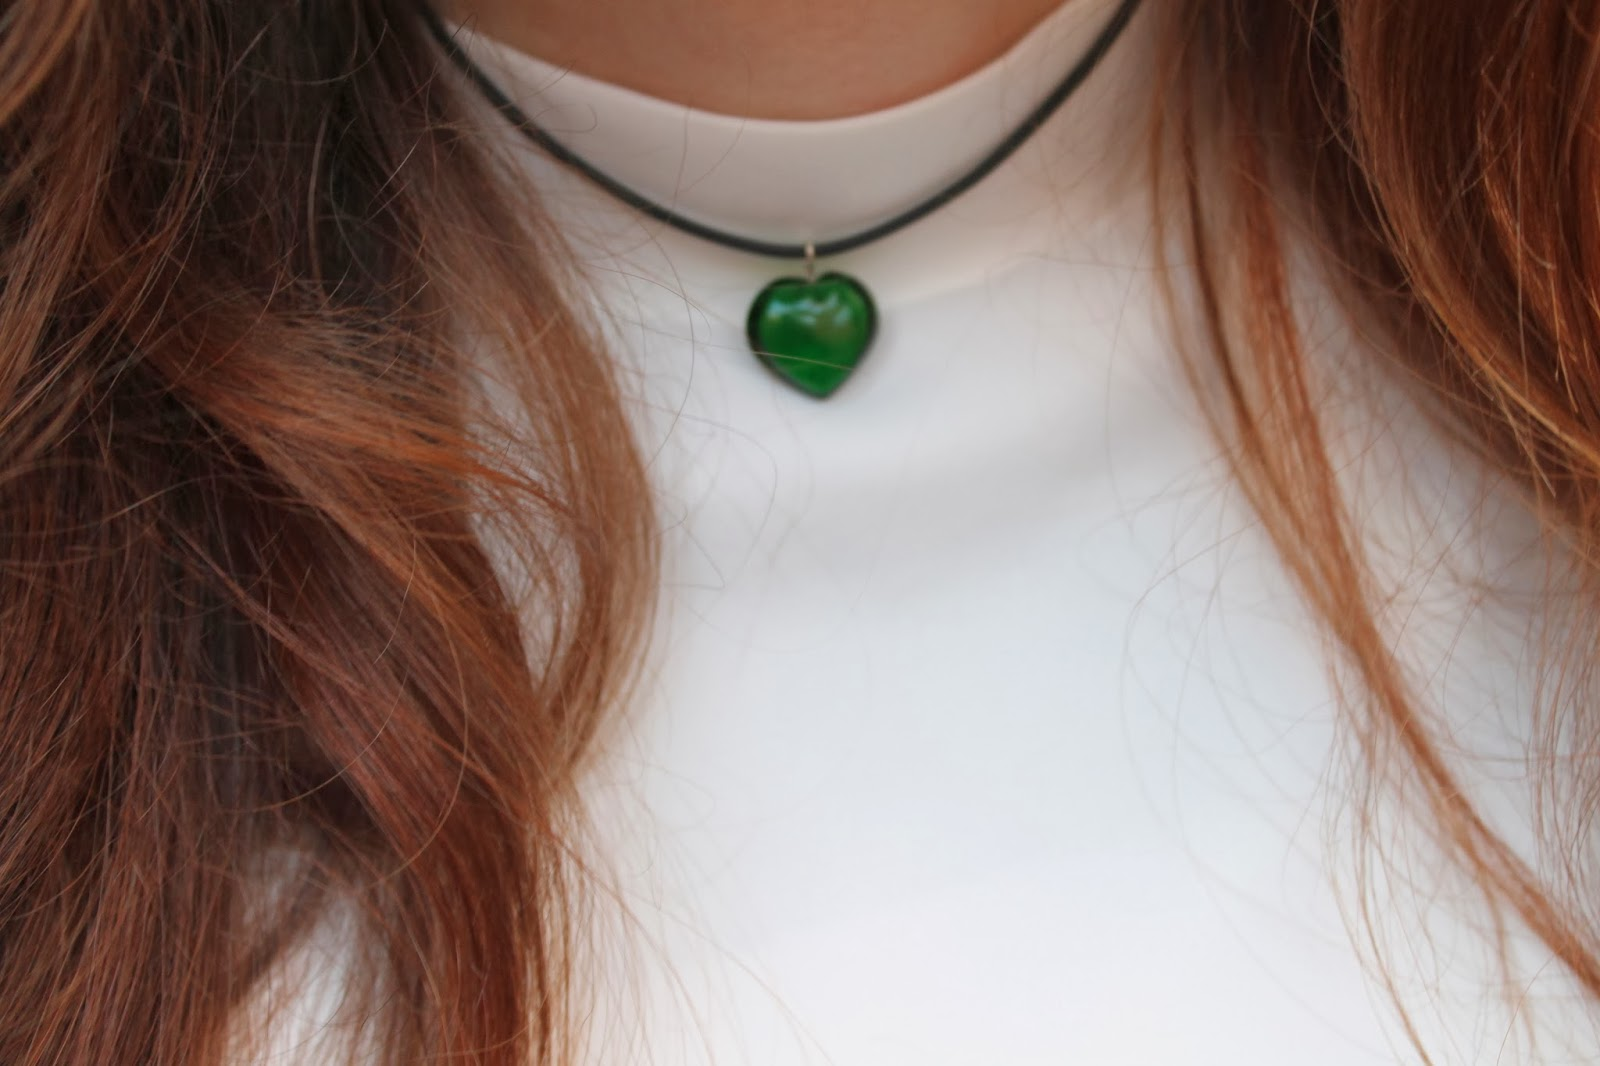 90s choker, nineties style necklace, heart choker, glass heart, curly hair, auburn curls, enrapture totem styler